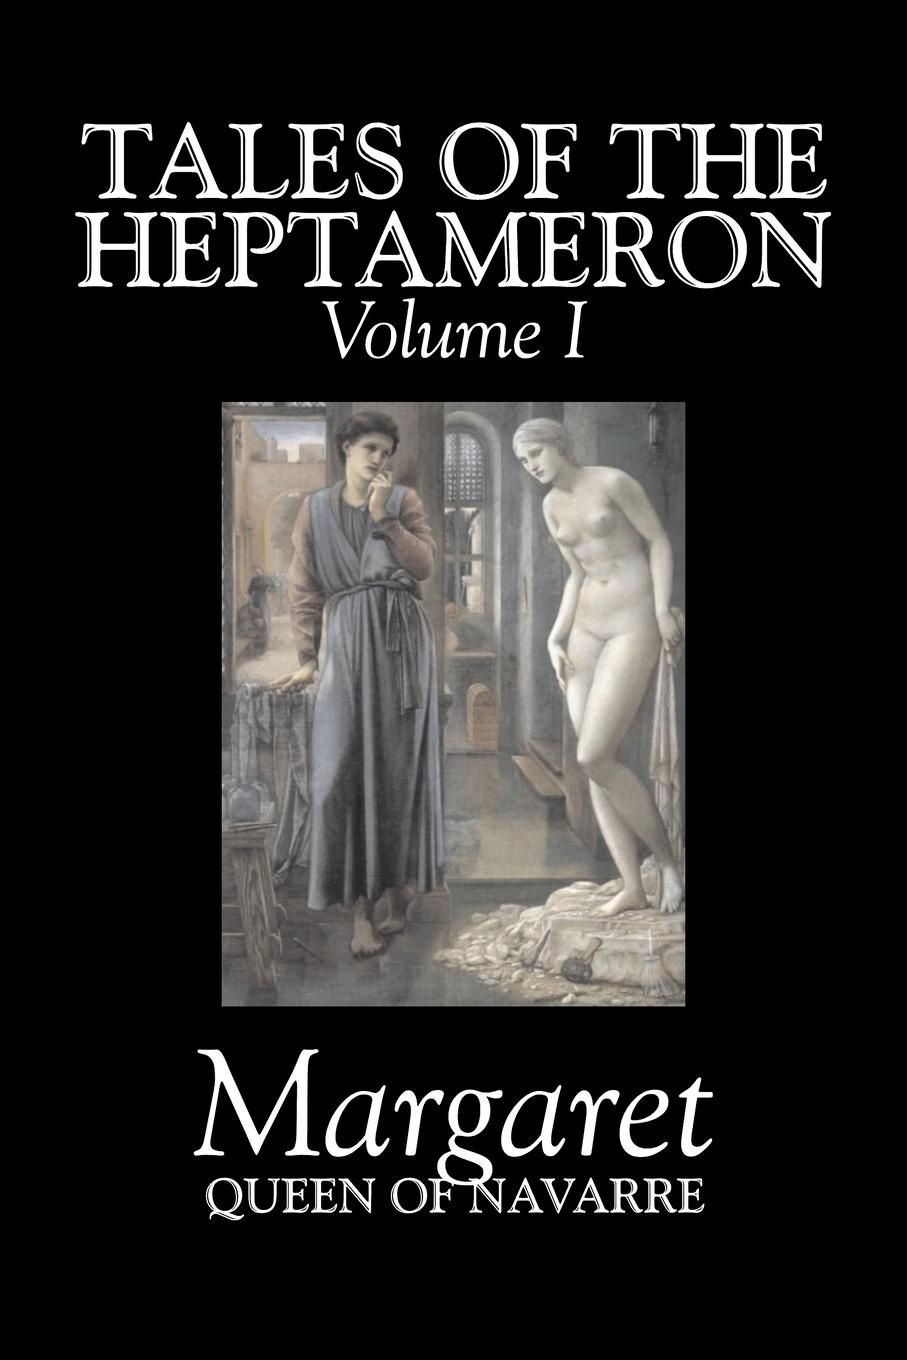 Queen of Navarre Margaret, George Saintsbury Tales of the Heptameron, Vol. I of V by Margaret, Queen of Navarre, Fiction, Classics, Literary, Action & Adventure c s hughes the book of barbarous tales